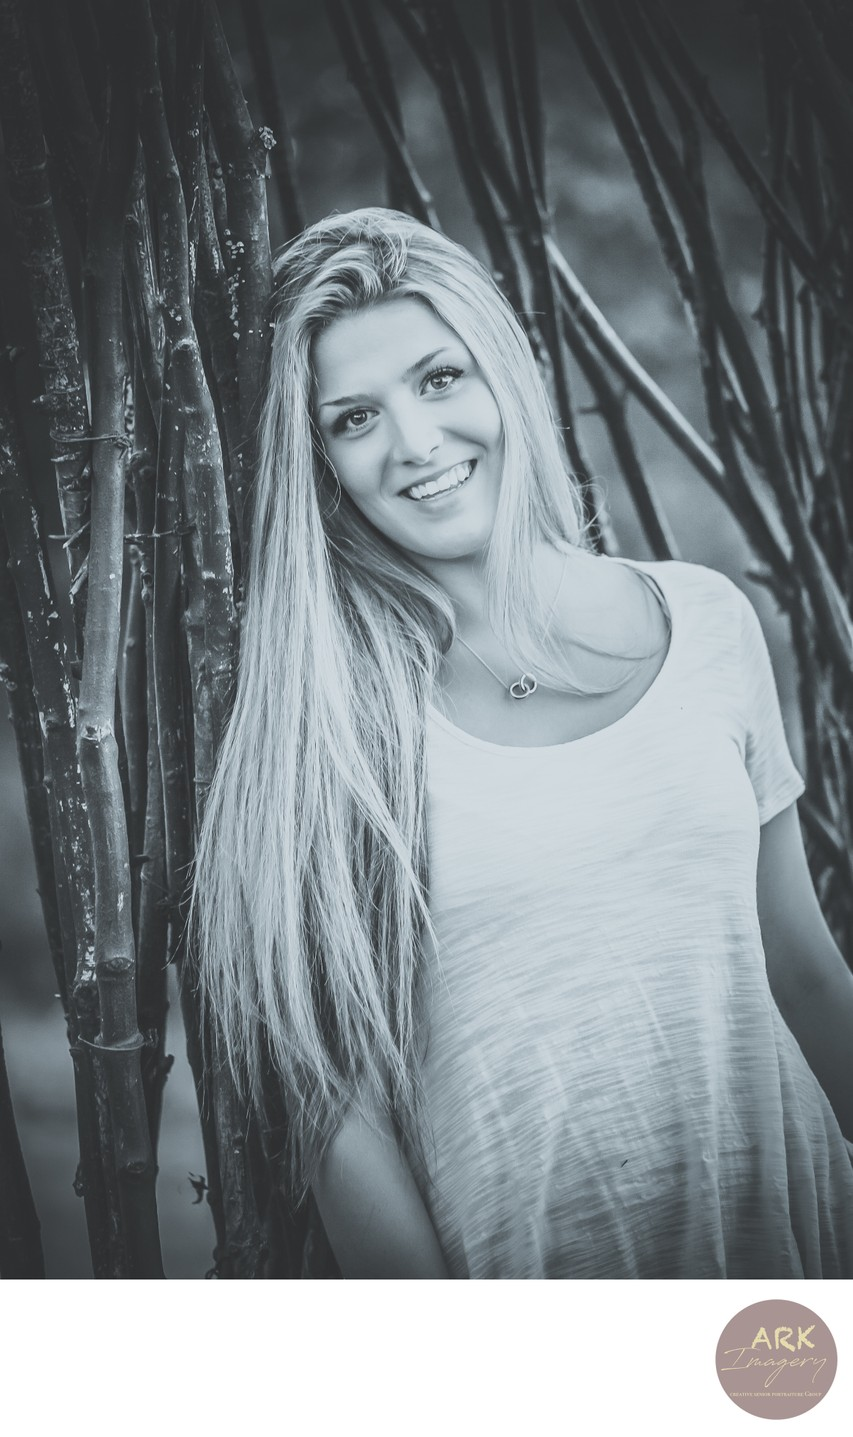 Black and White Senior Portraits